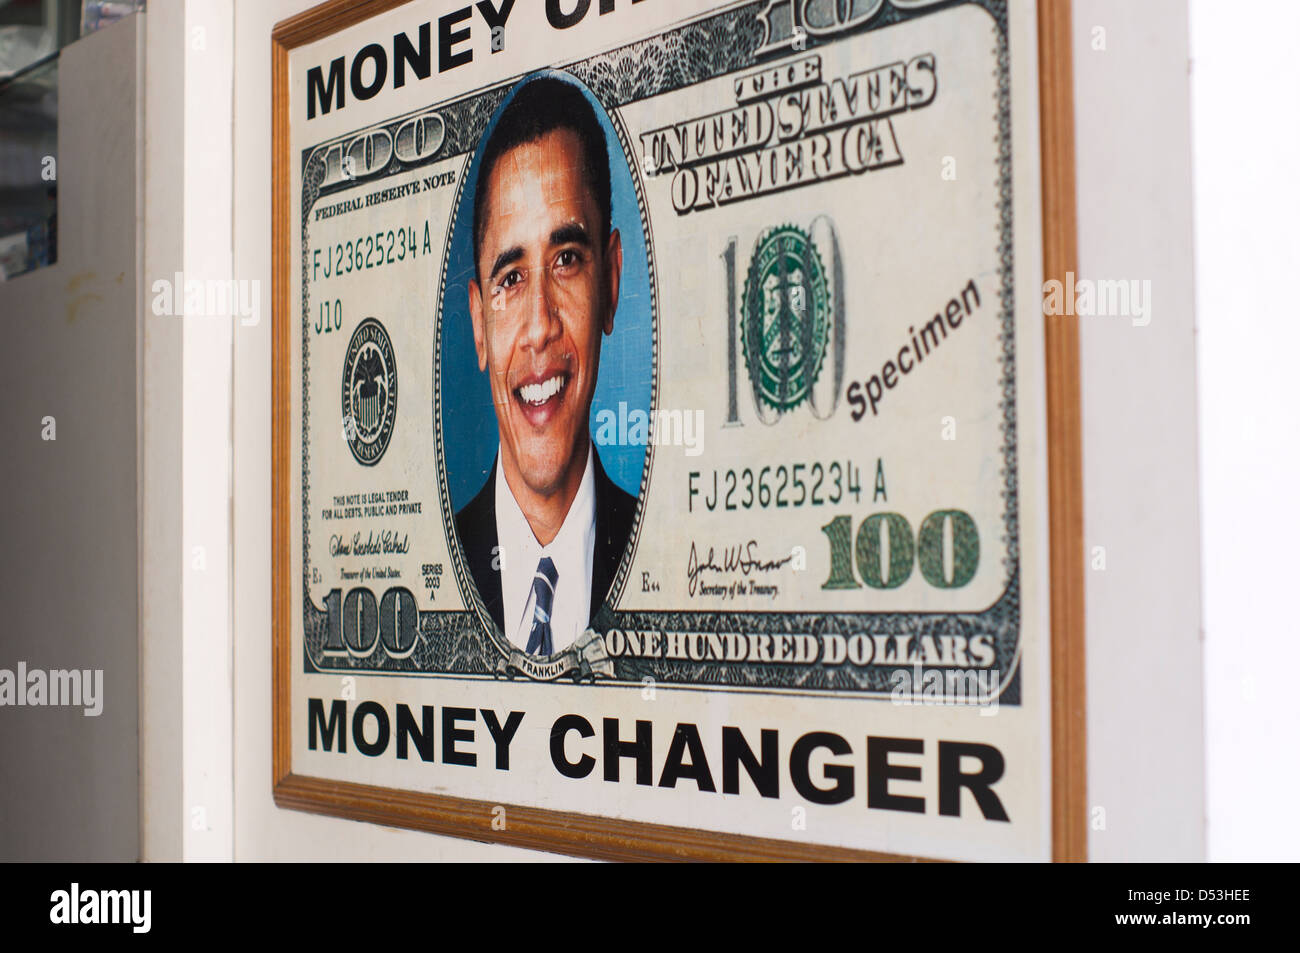 A mock up of Obama images on US dollars, photo is taken in Kuala Lumpur, Malaysia. - Stock Image